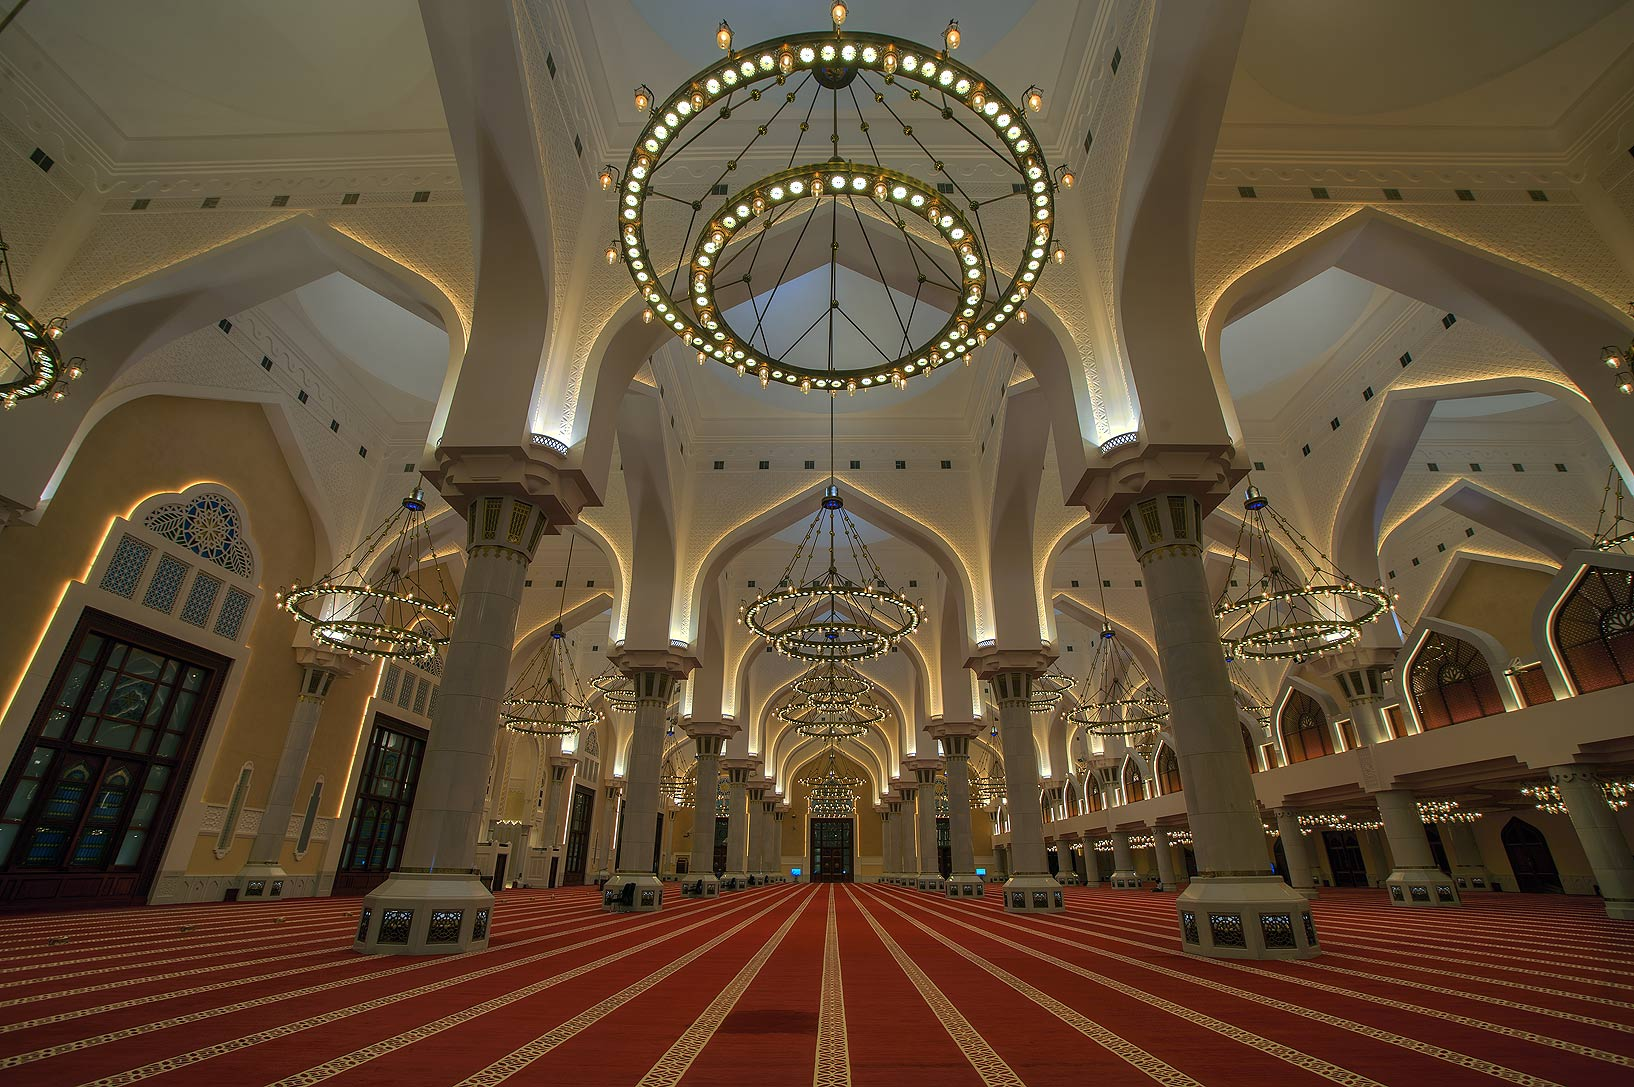 Chandelier of State Mosque (Sheikh Imam Muhammad Ibn Abdul Wahhab Mosque). Doha, Qatar